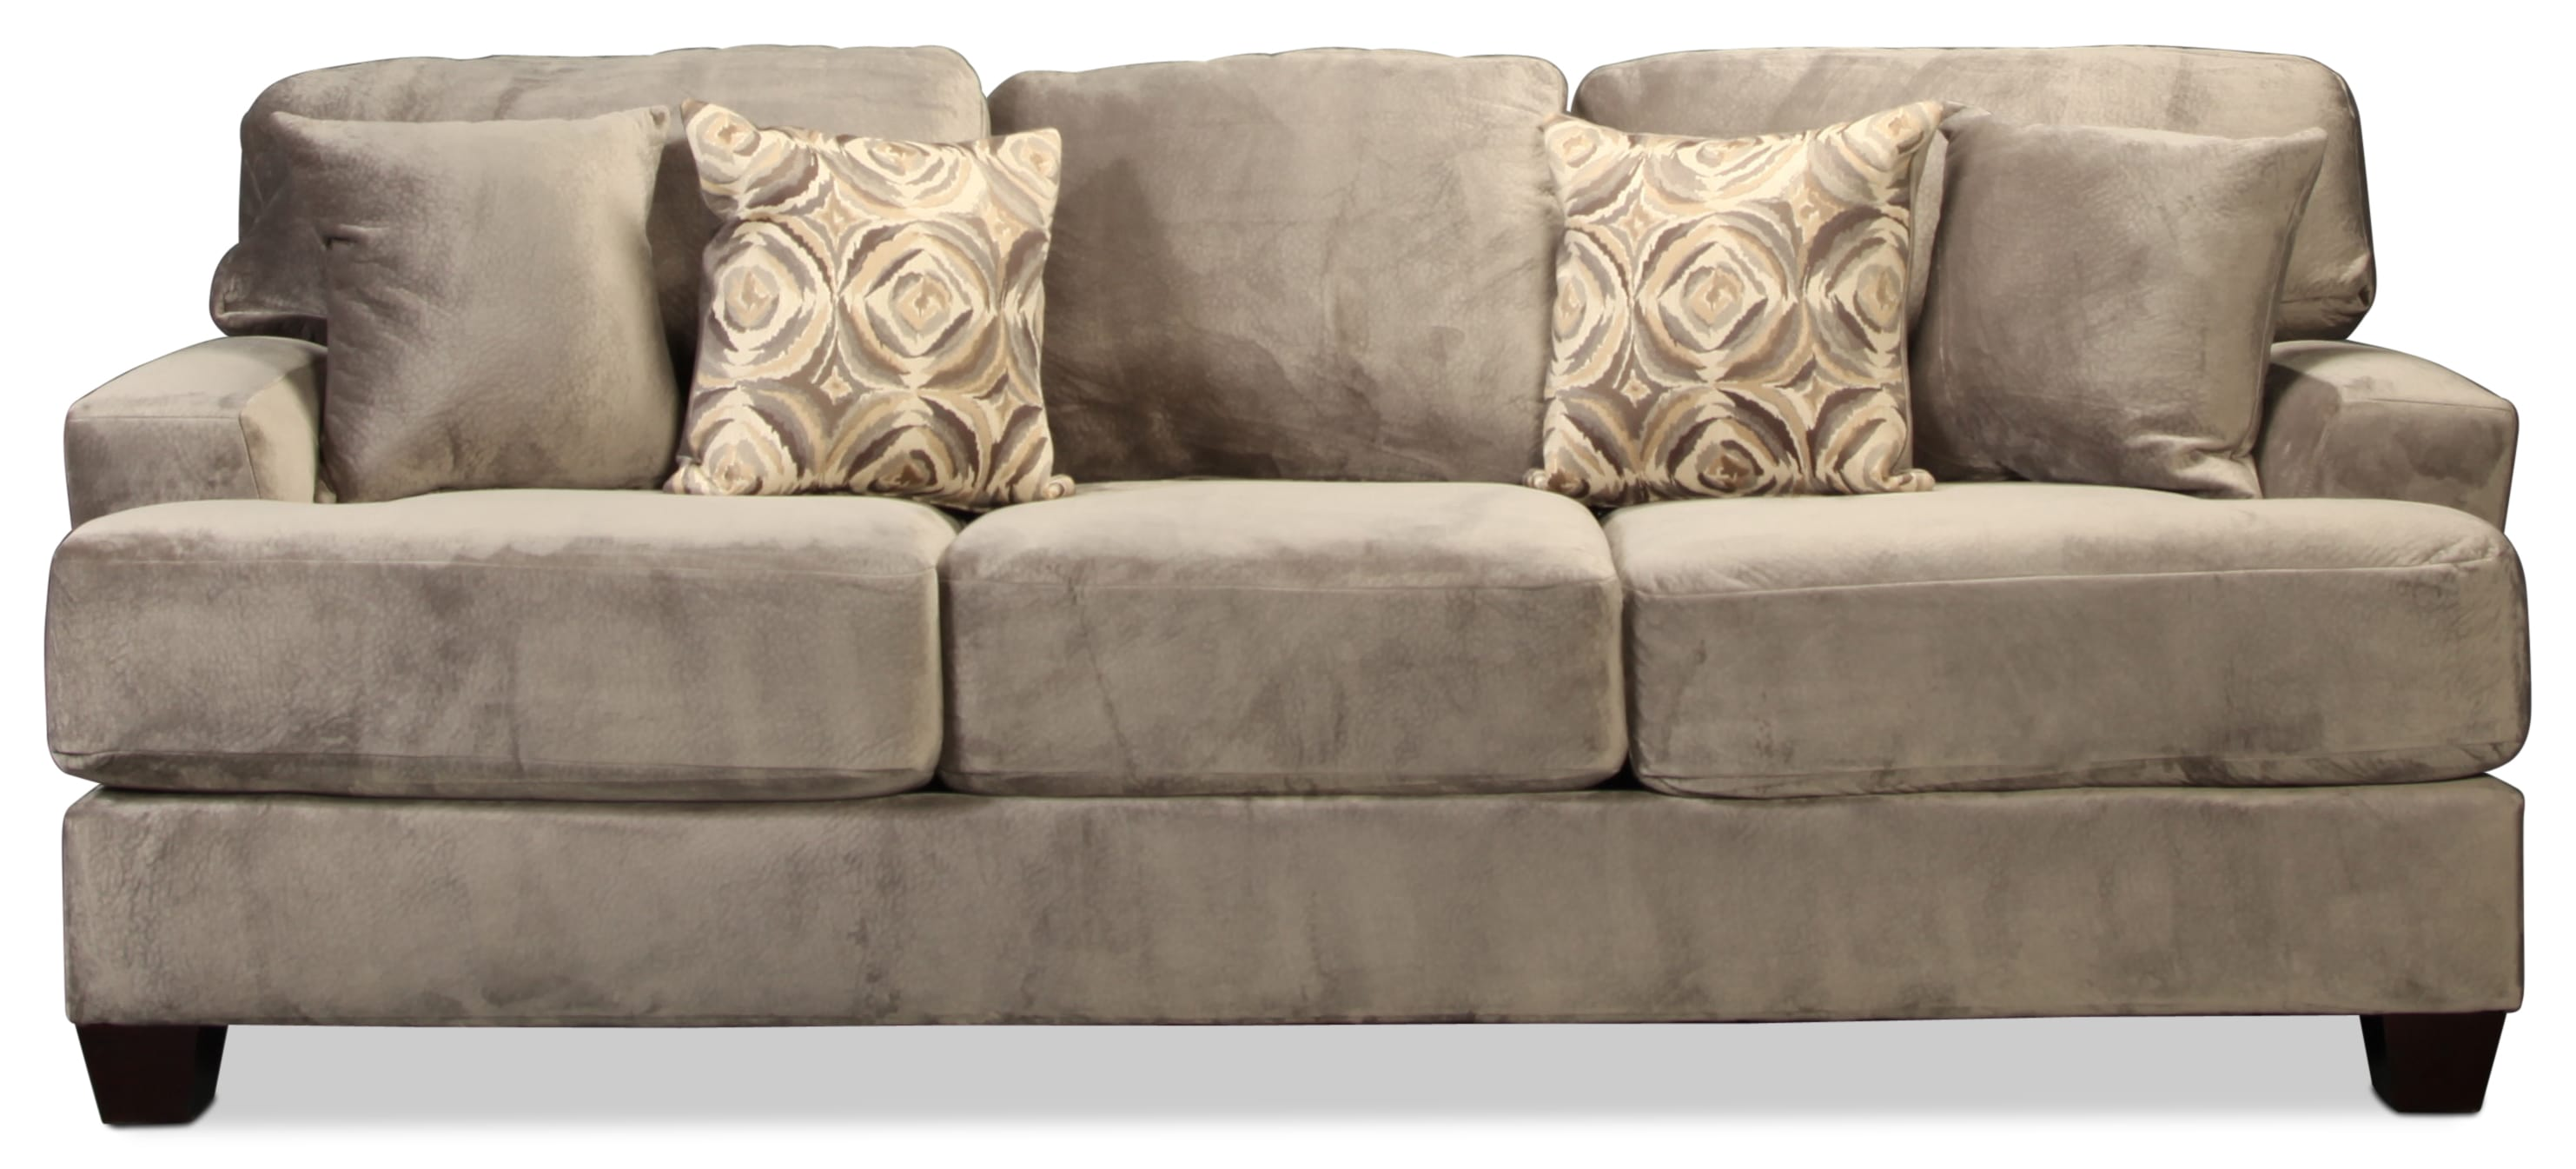 Montclaire Sofa - Charcoal